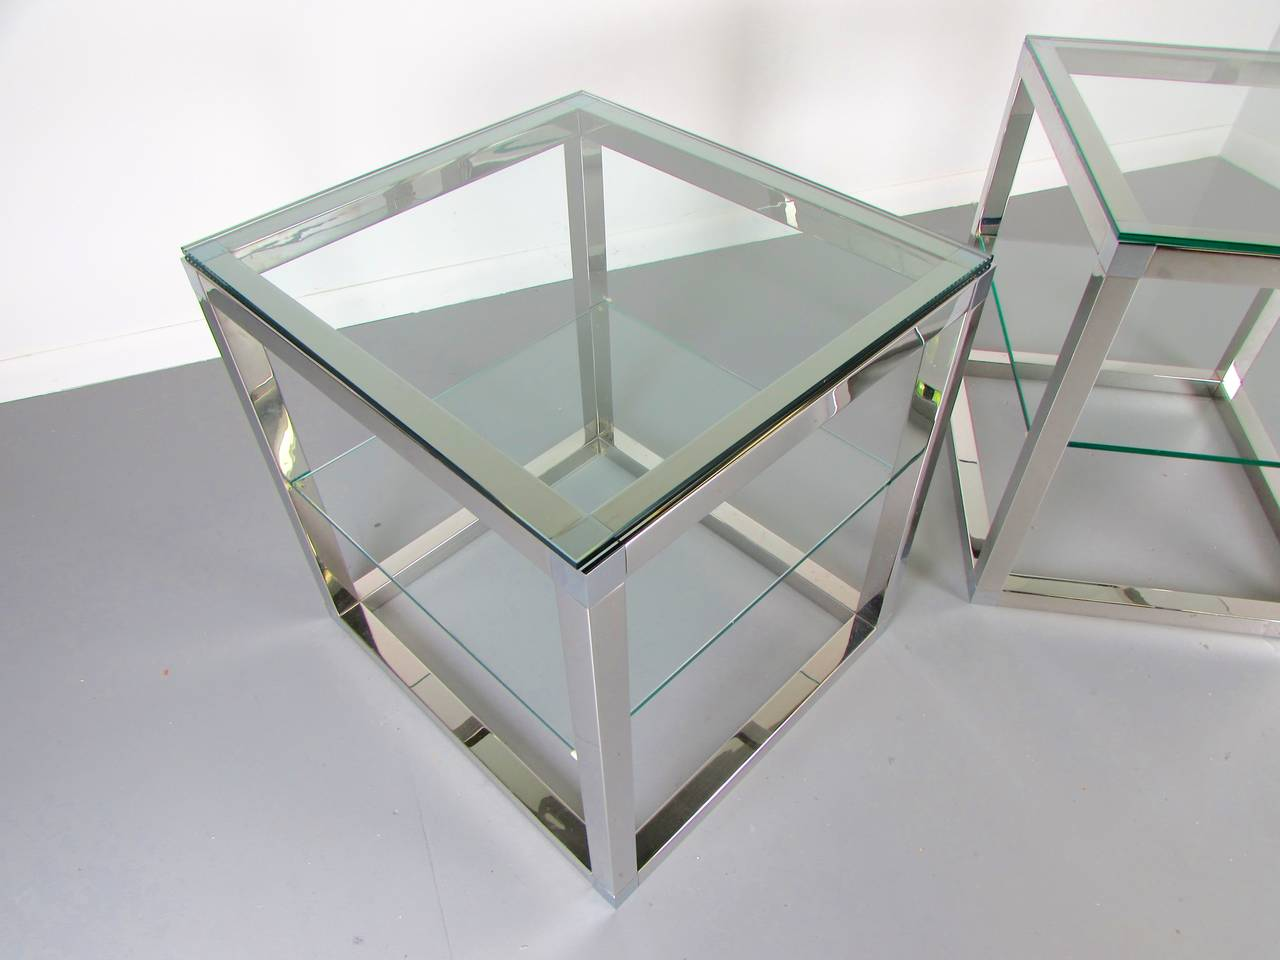 Minimalist Chrome Cube Tables With Glass Shelves In The